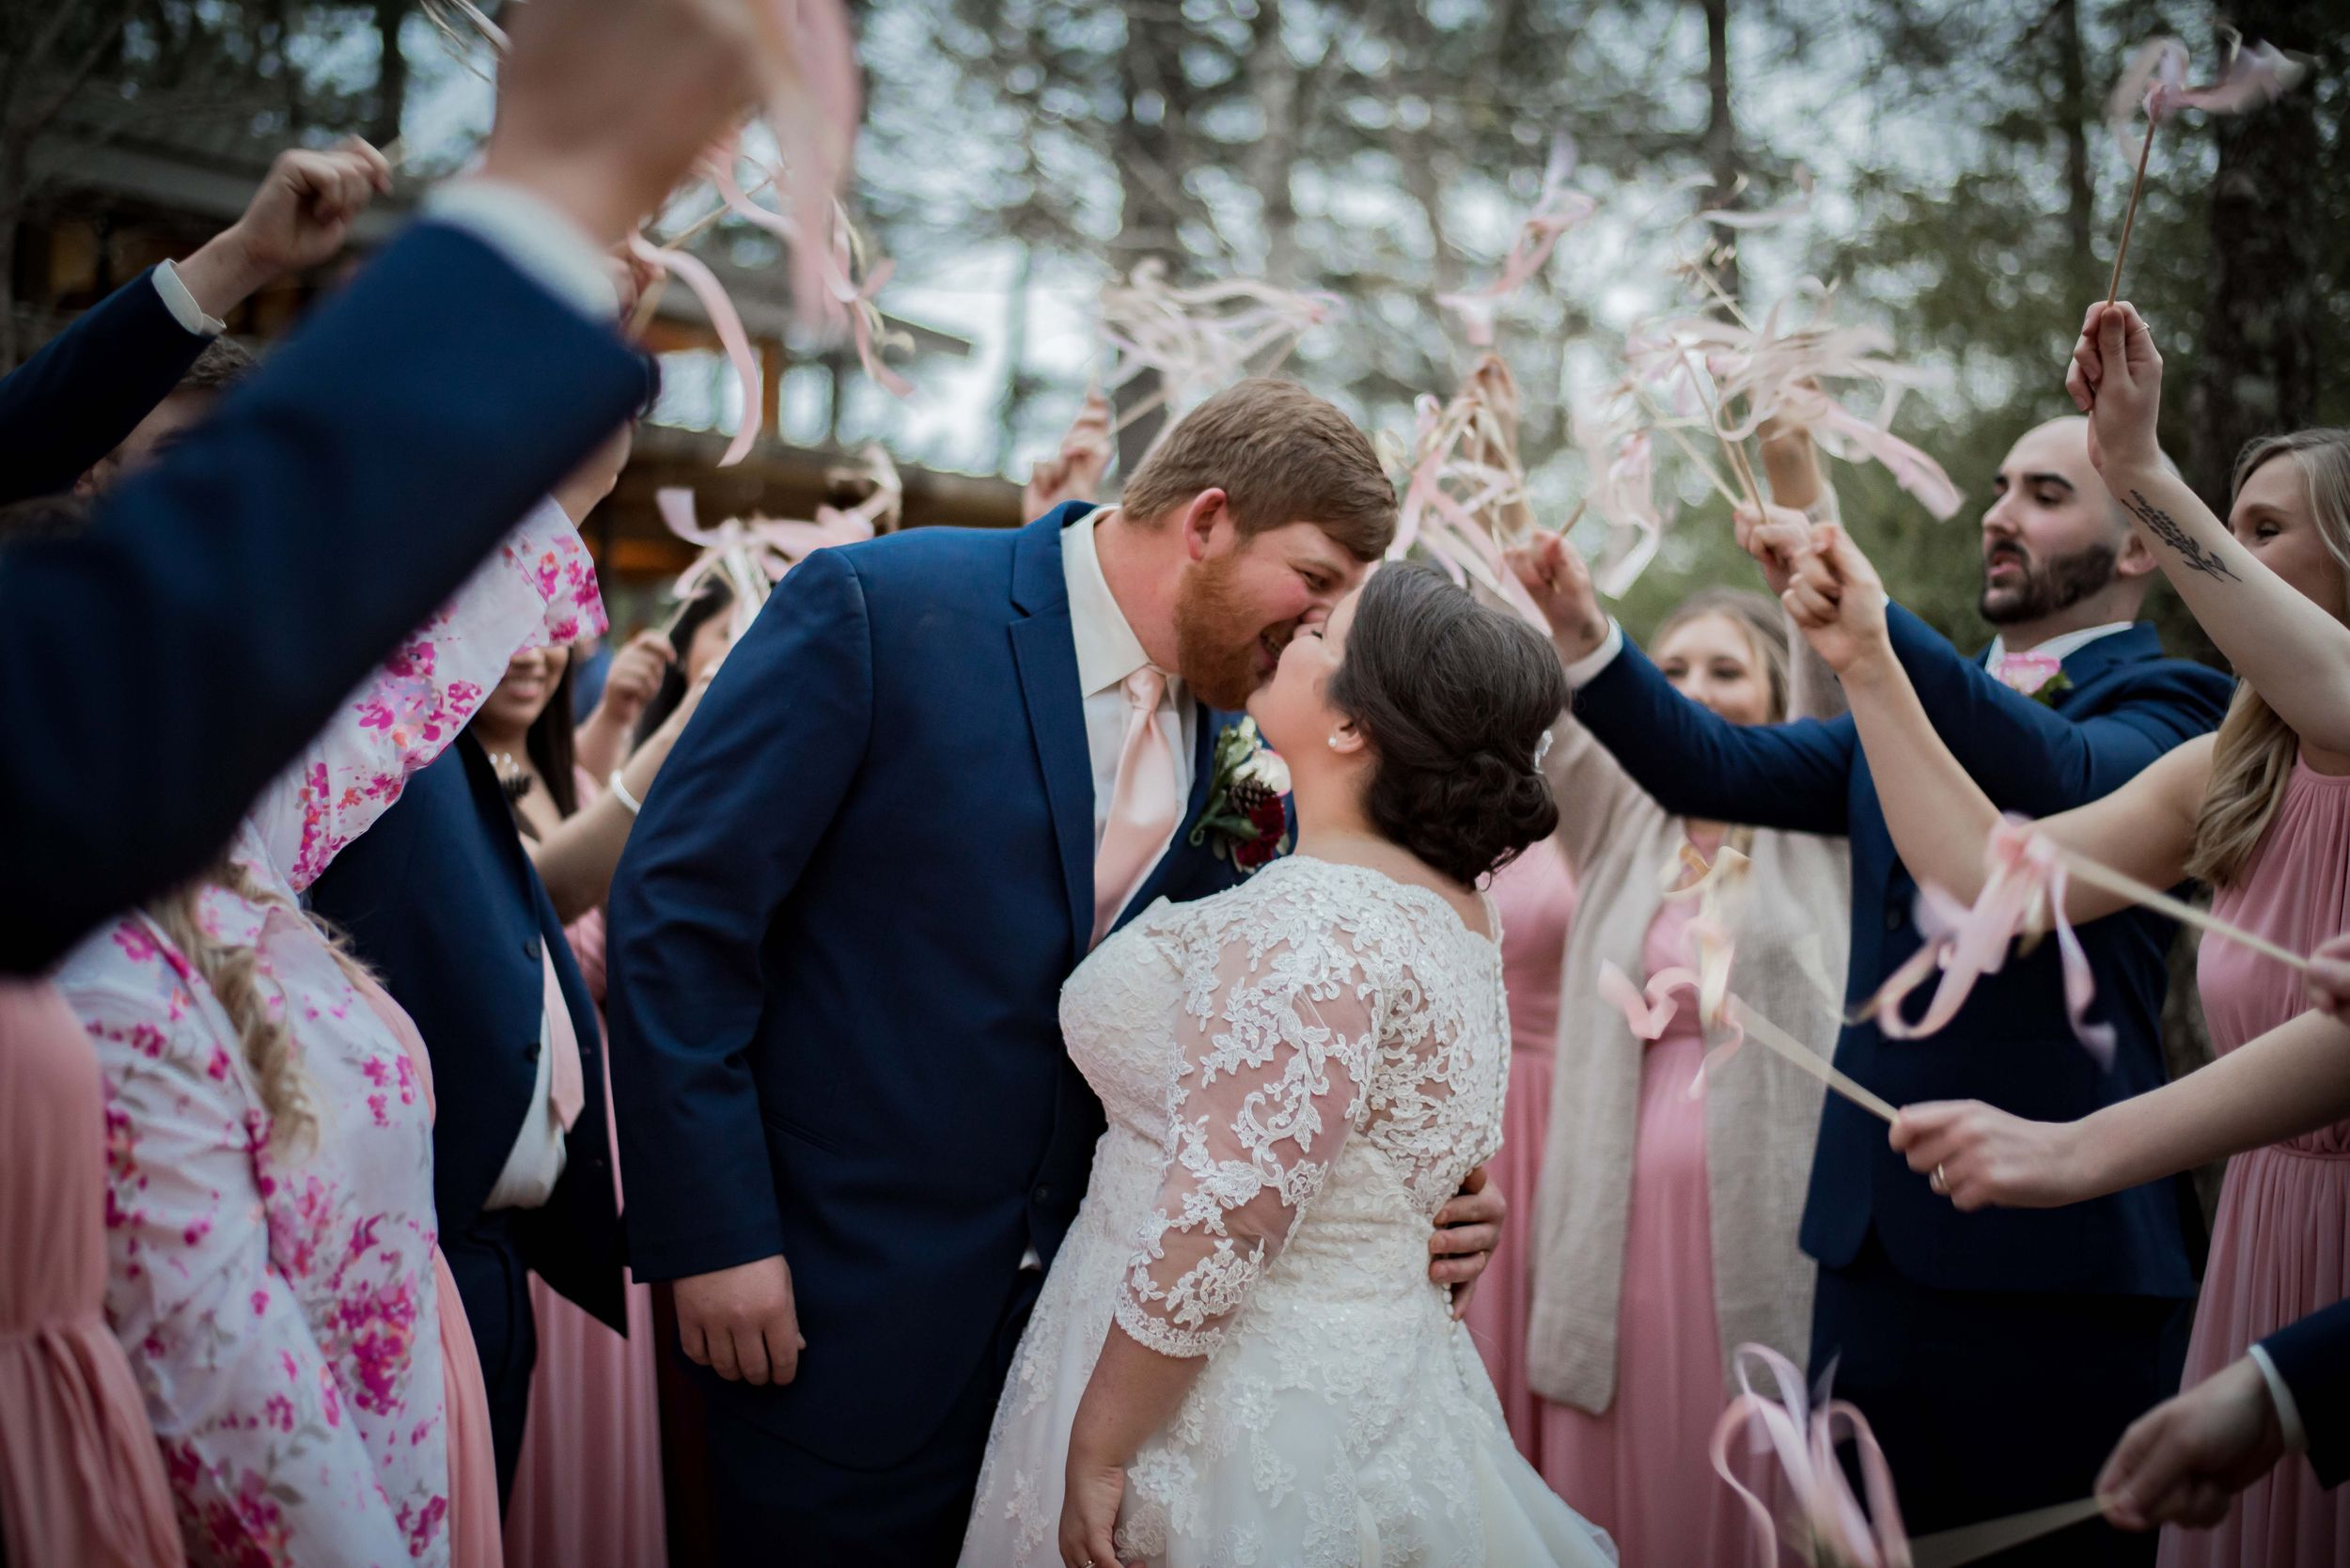 Wedding, Louisiana Wedding, Southern Wedding, Bride, Groom, Wedding Exit, Streamers, Bridal Party, Husband and Wife